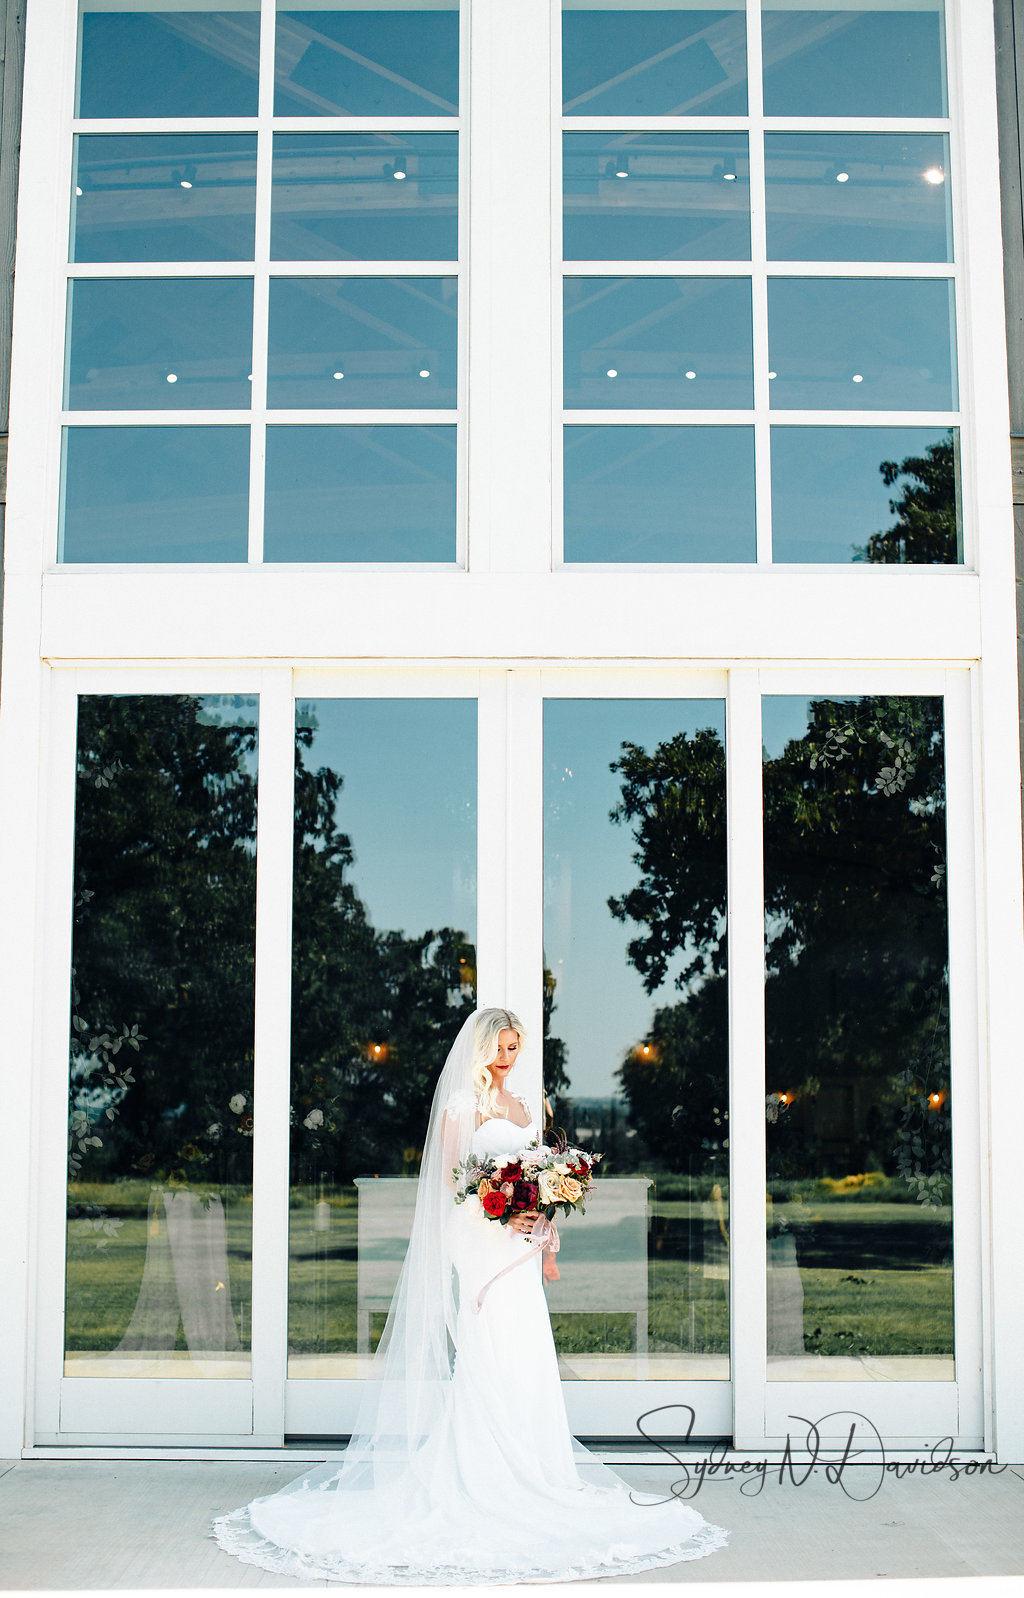 sydney-davidson-wedding-stillwater-oklahoma-wedding-session-traveling-photographer-portrait-tulsa-oklahoma-2447.jpg